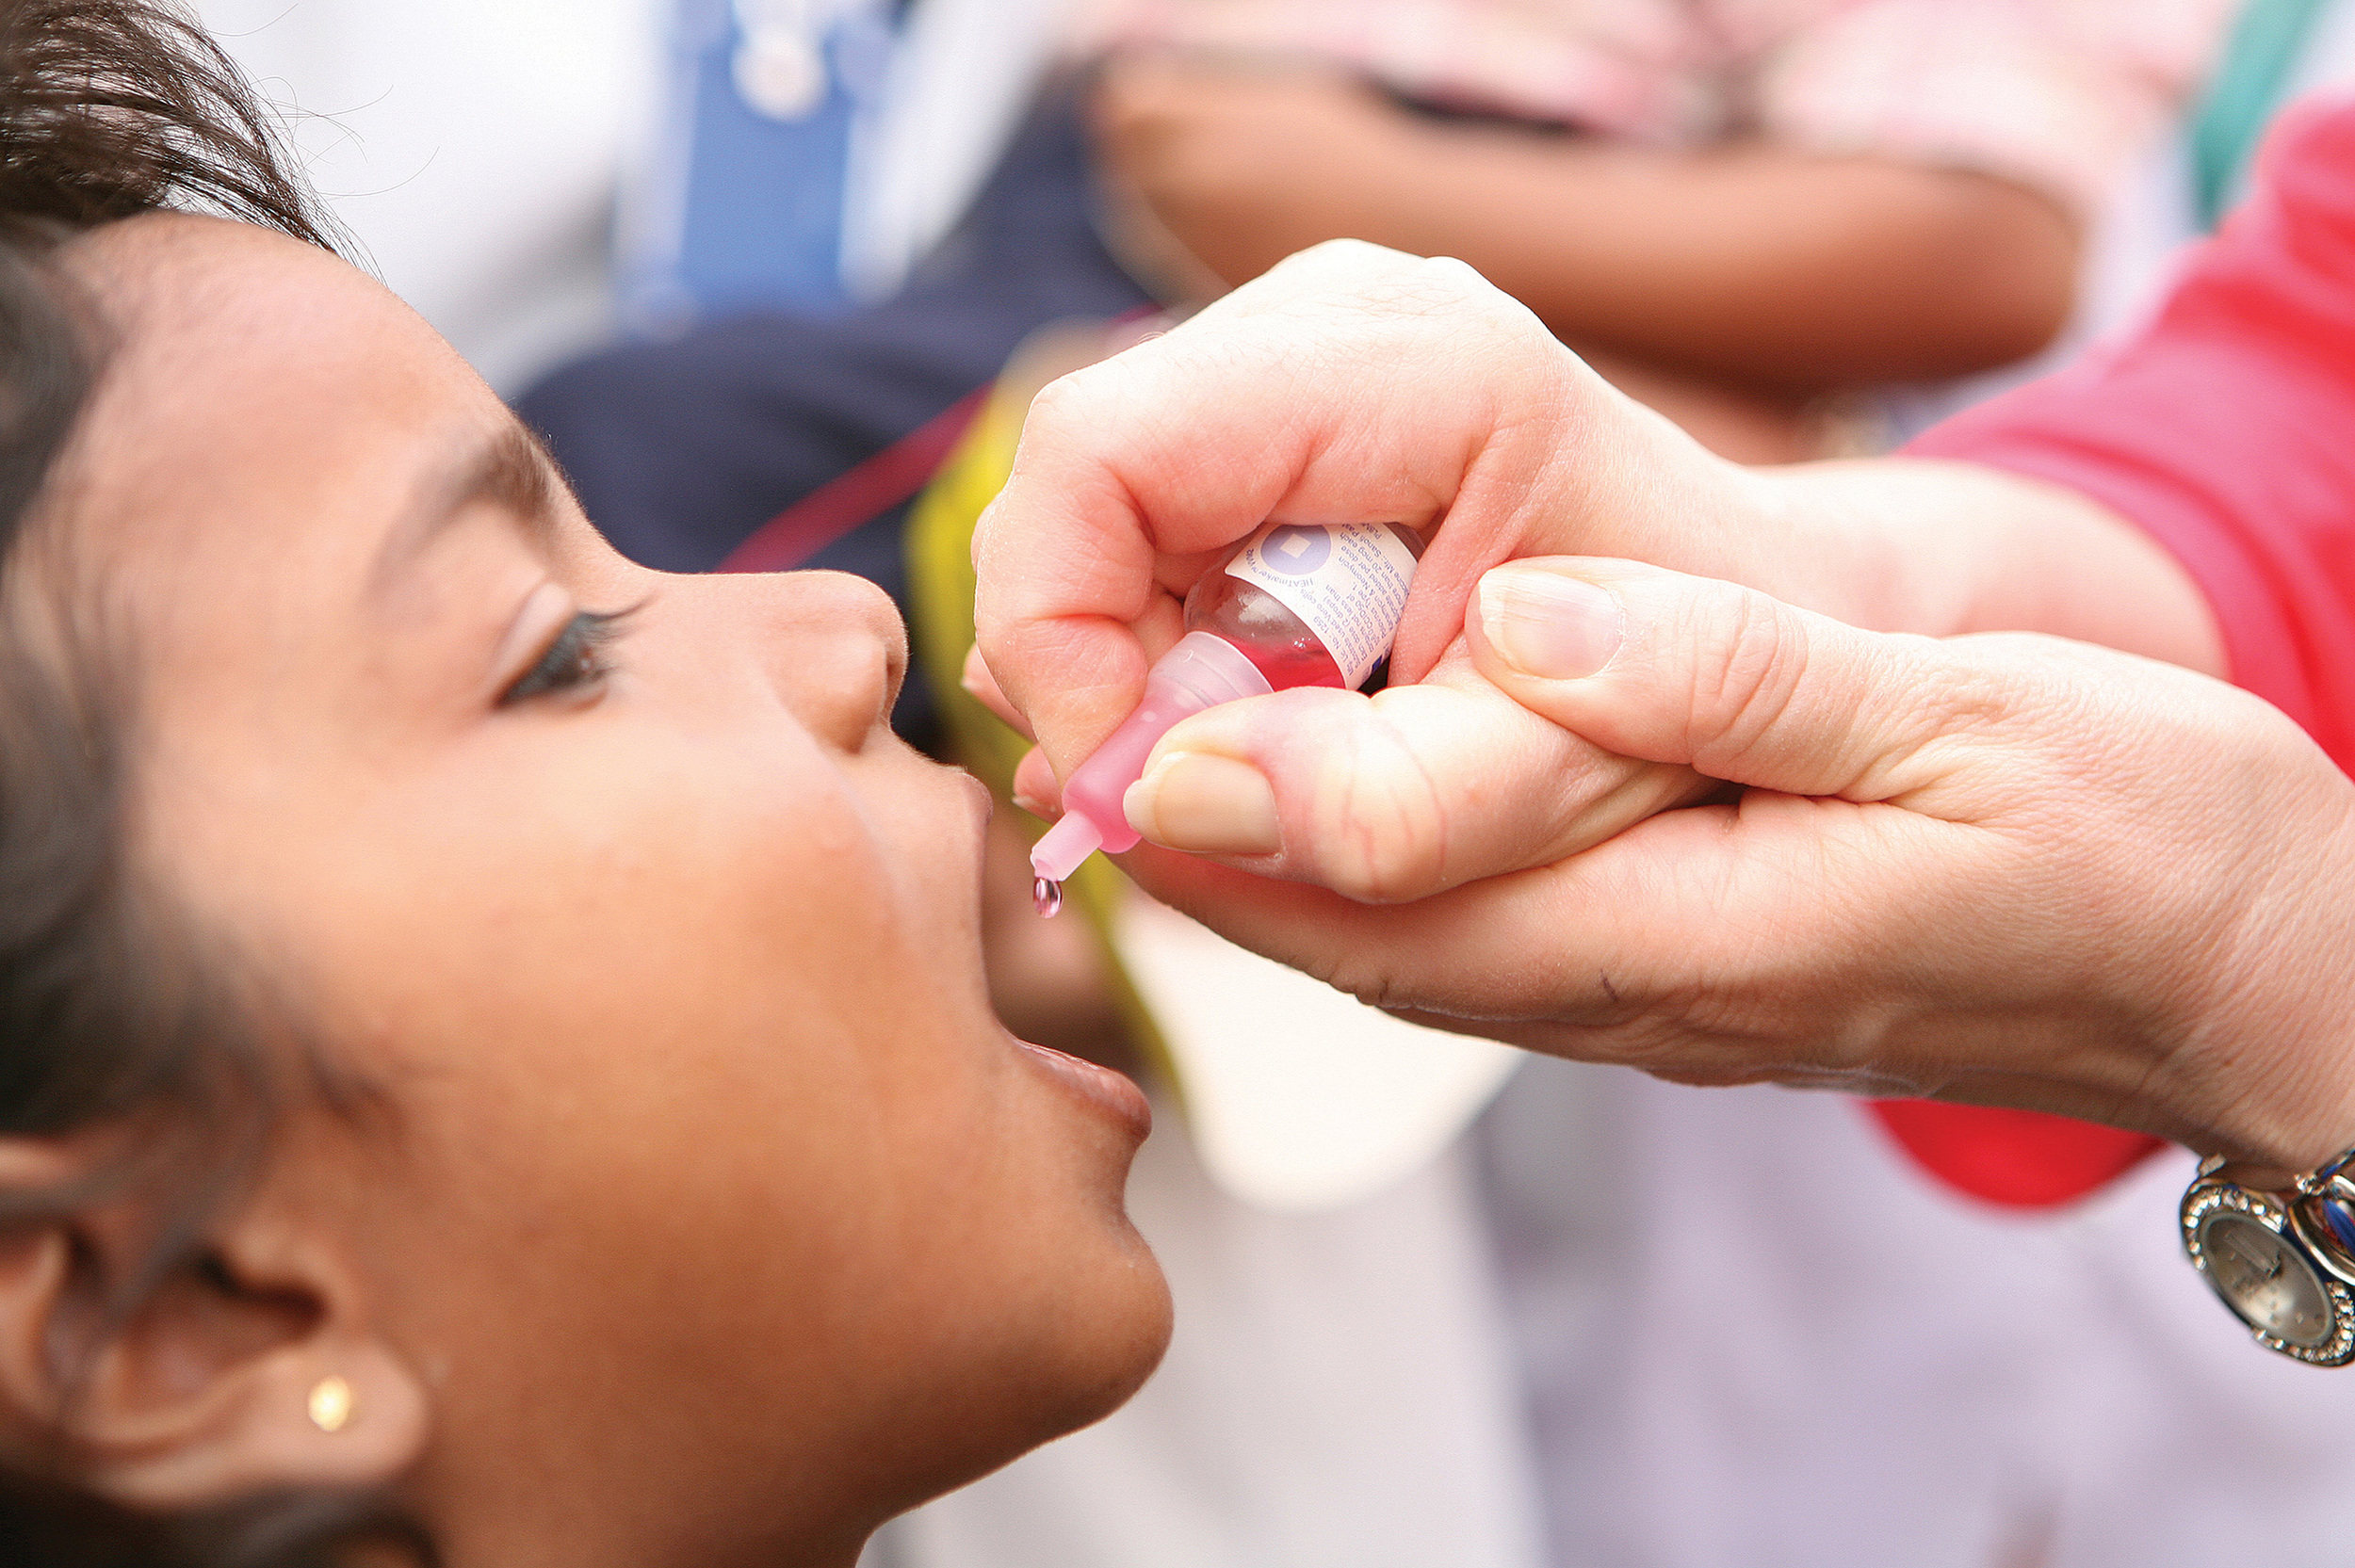 A child receives the polio immunization in Lucknow, Northern India. (Photo: Jean-Marc Giboux)